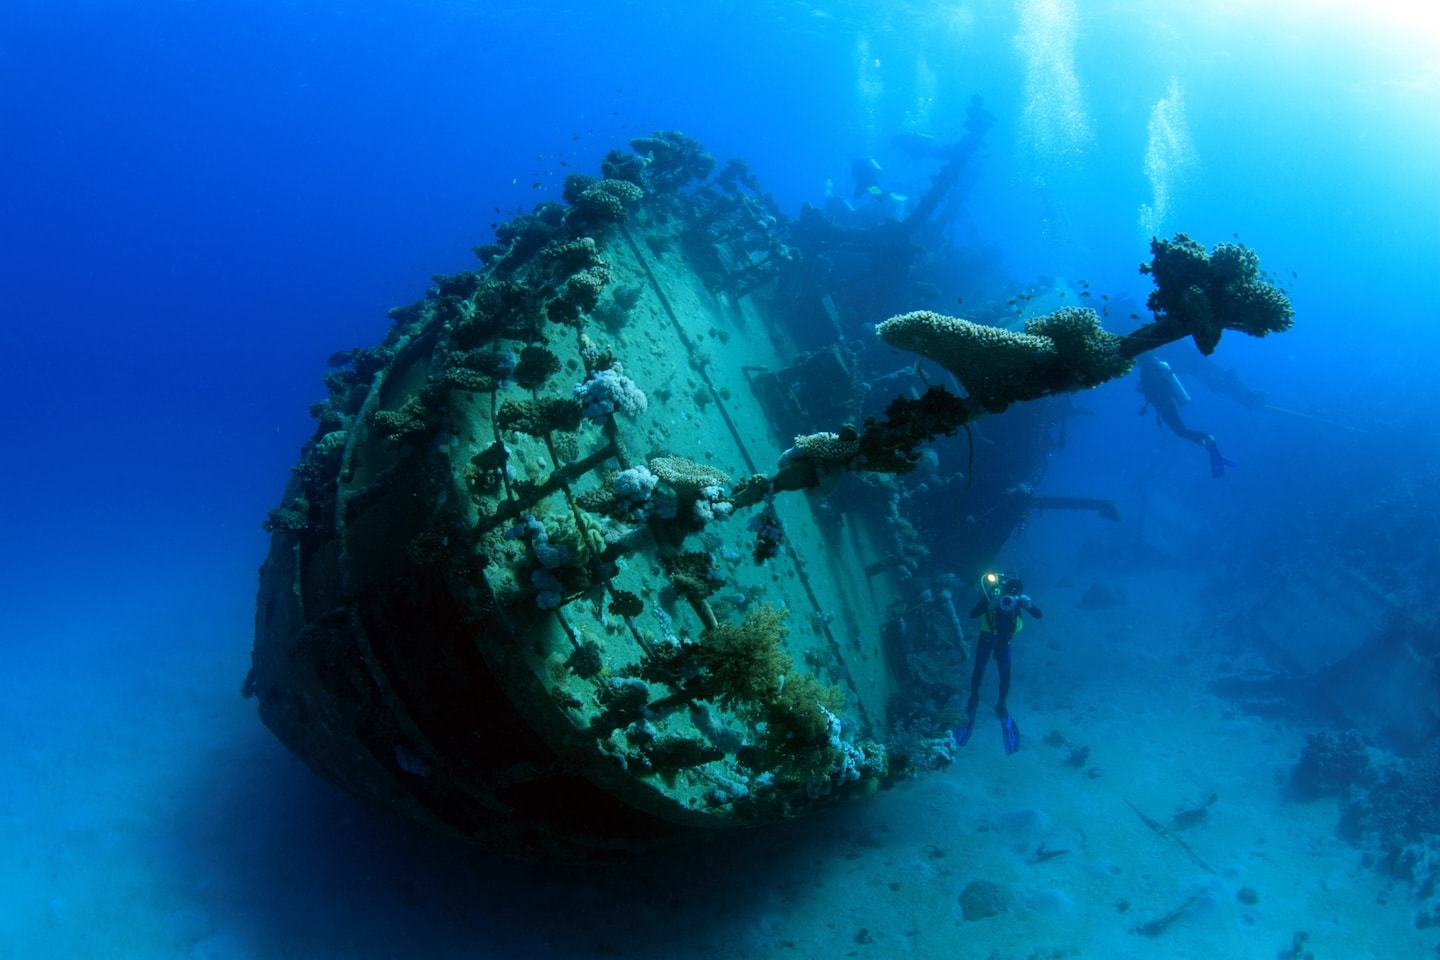 egypt diving: WWII shipwreck in red sea